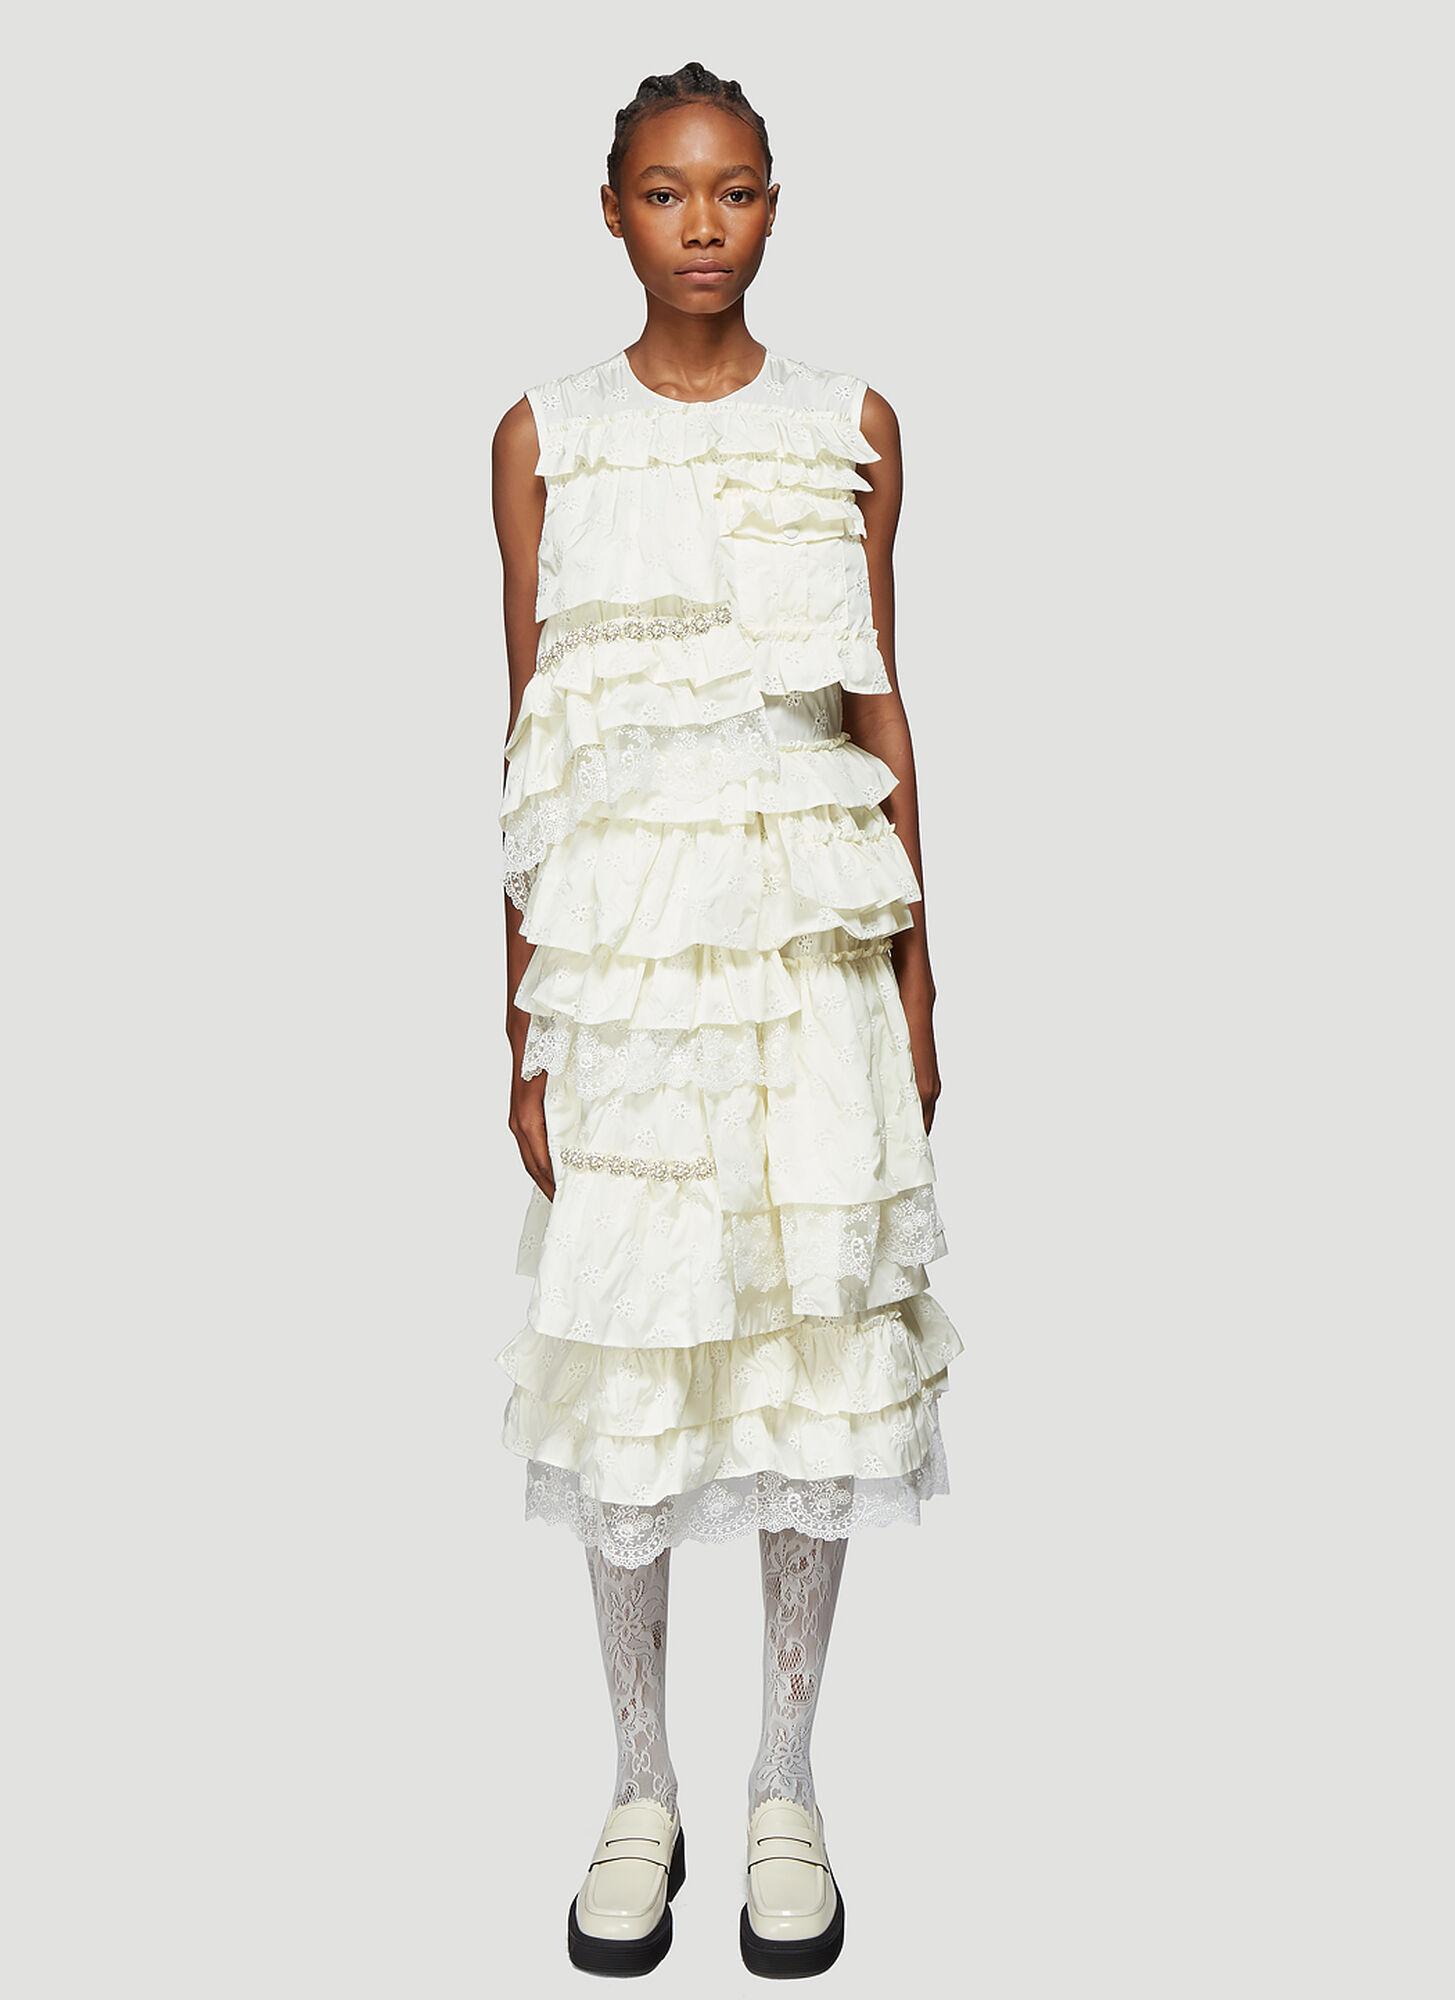 4 Moncler Simone Rocha Abito Broderie Anglaise Dress in White